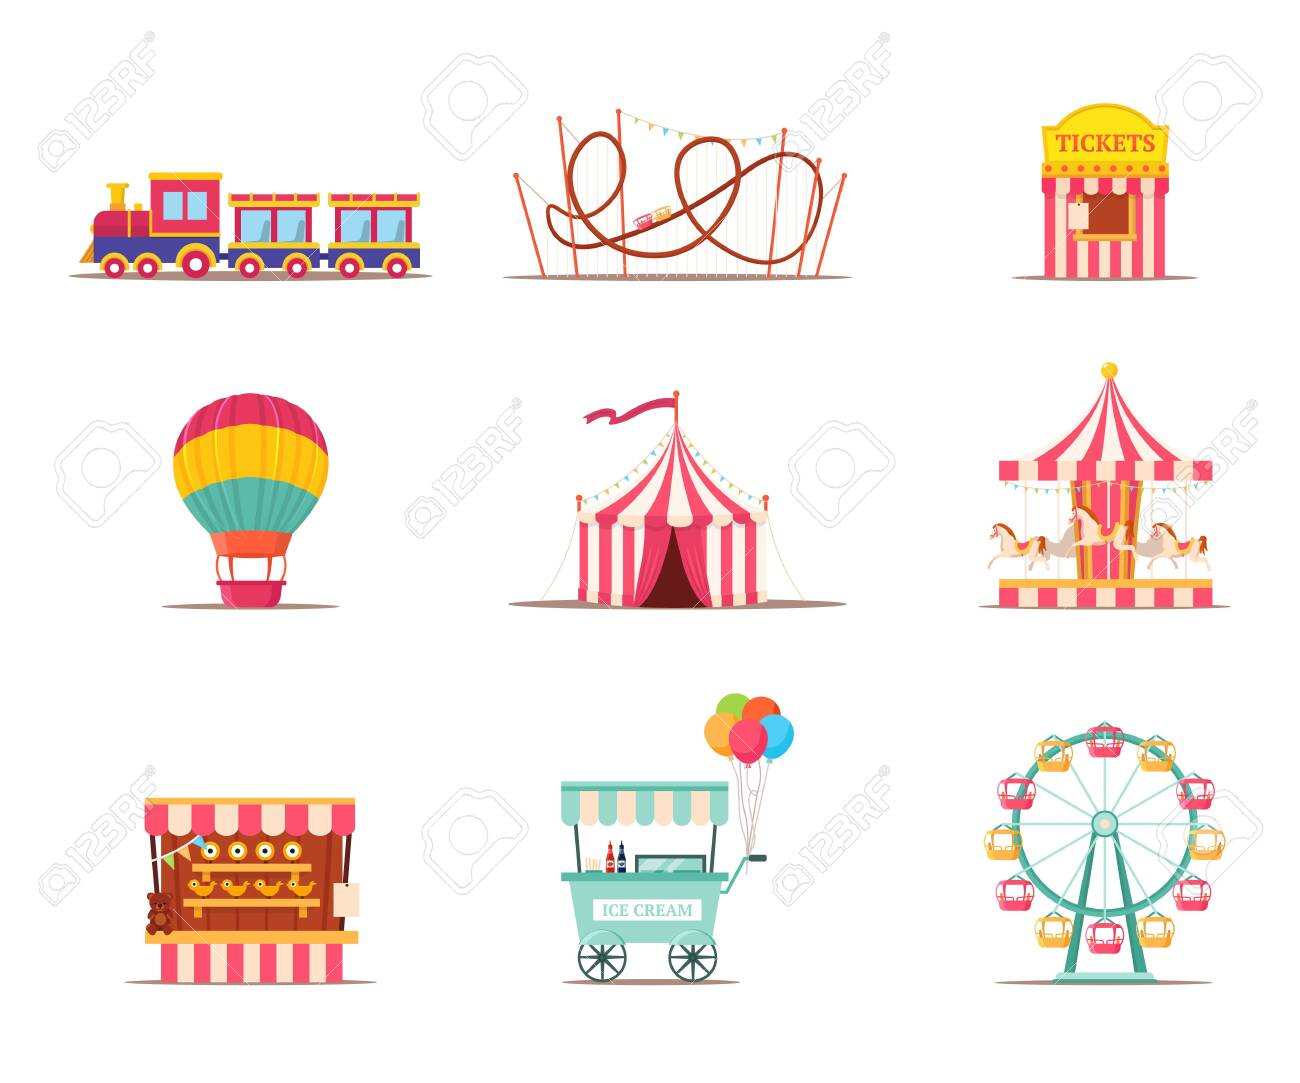 Amusement park attractions illustrations set isolated on white background - 150144298